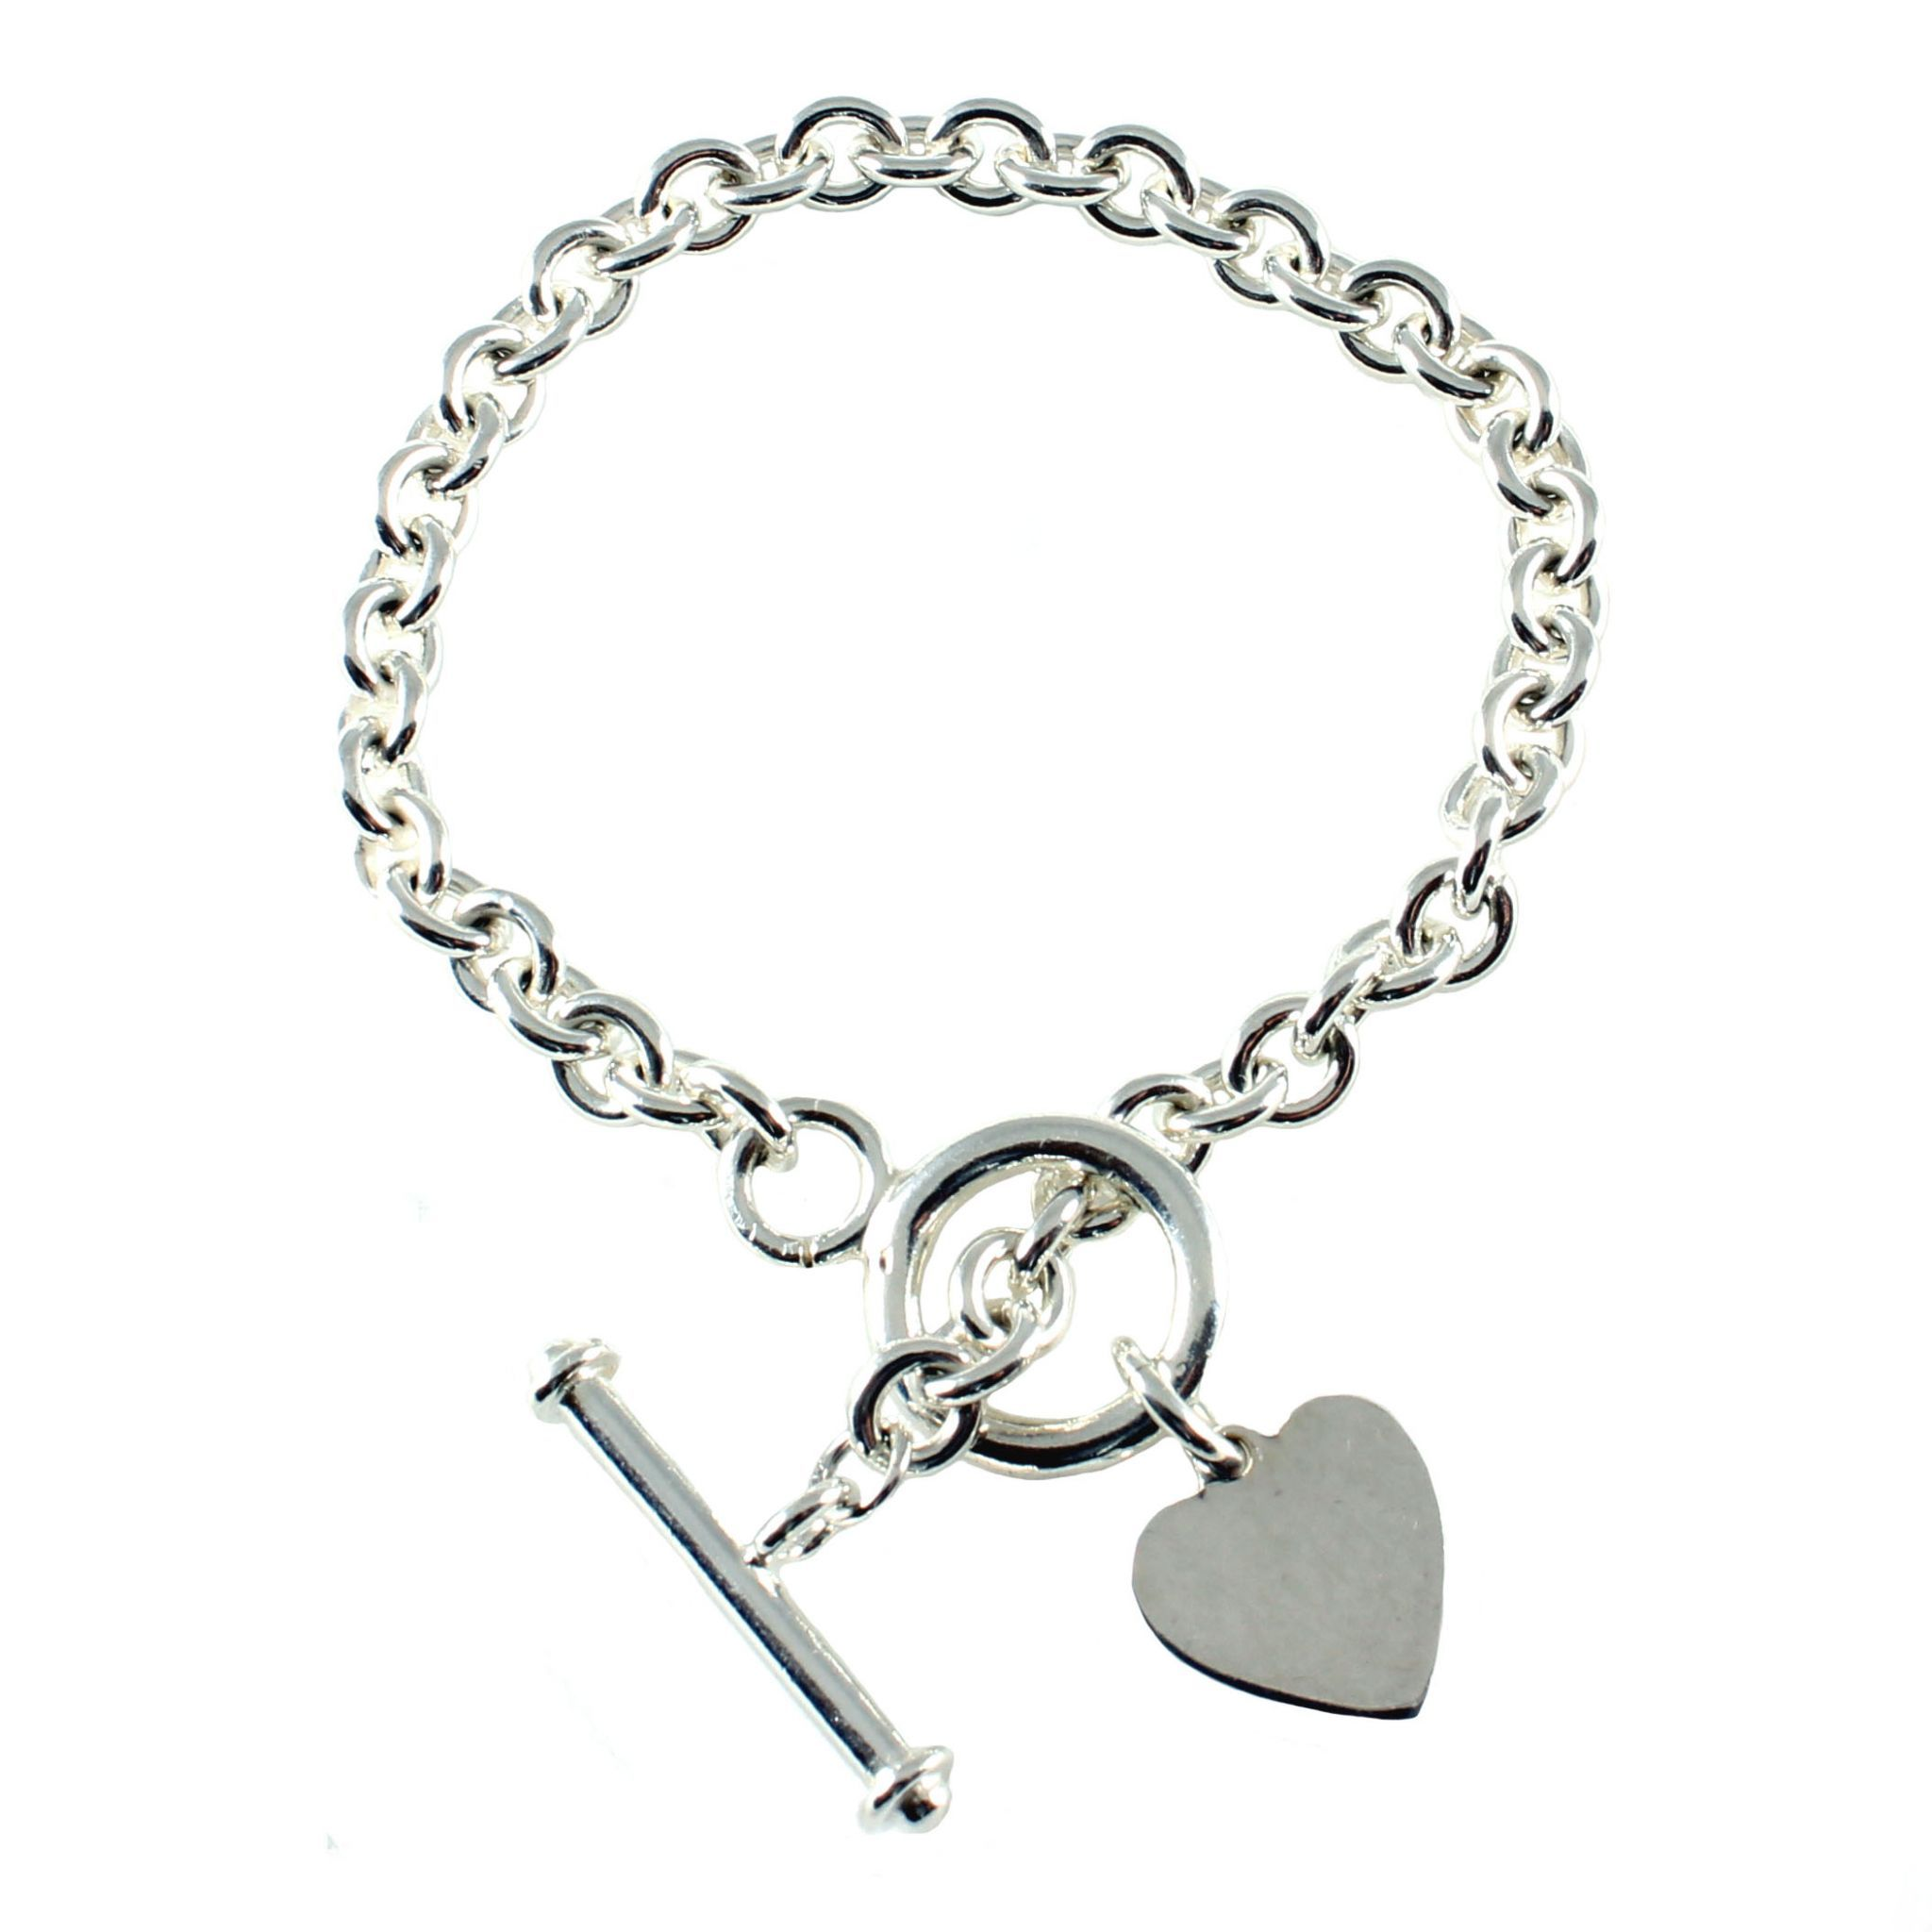 disc bangles en charm front of links london hires bracelets sterling engrave gb silver bracelet baby